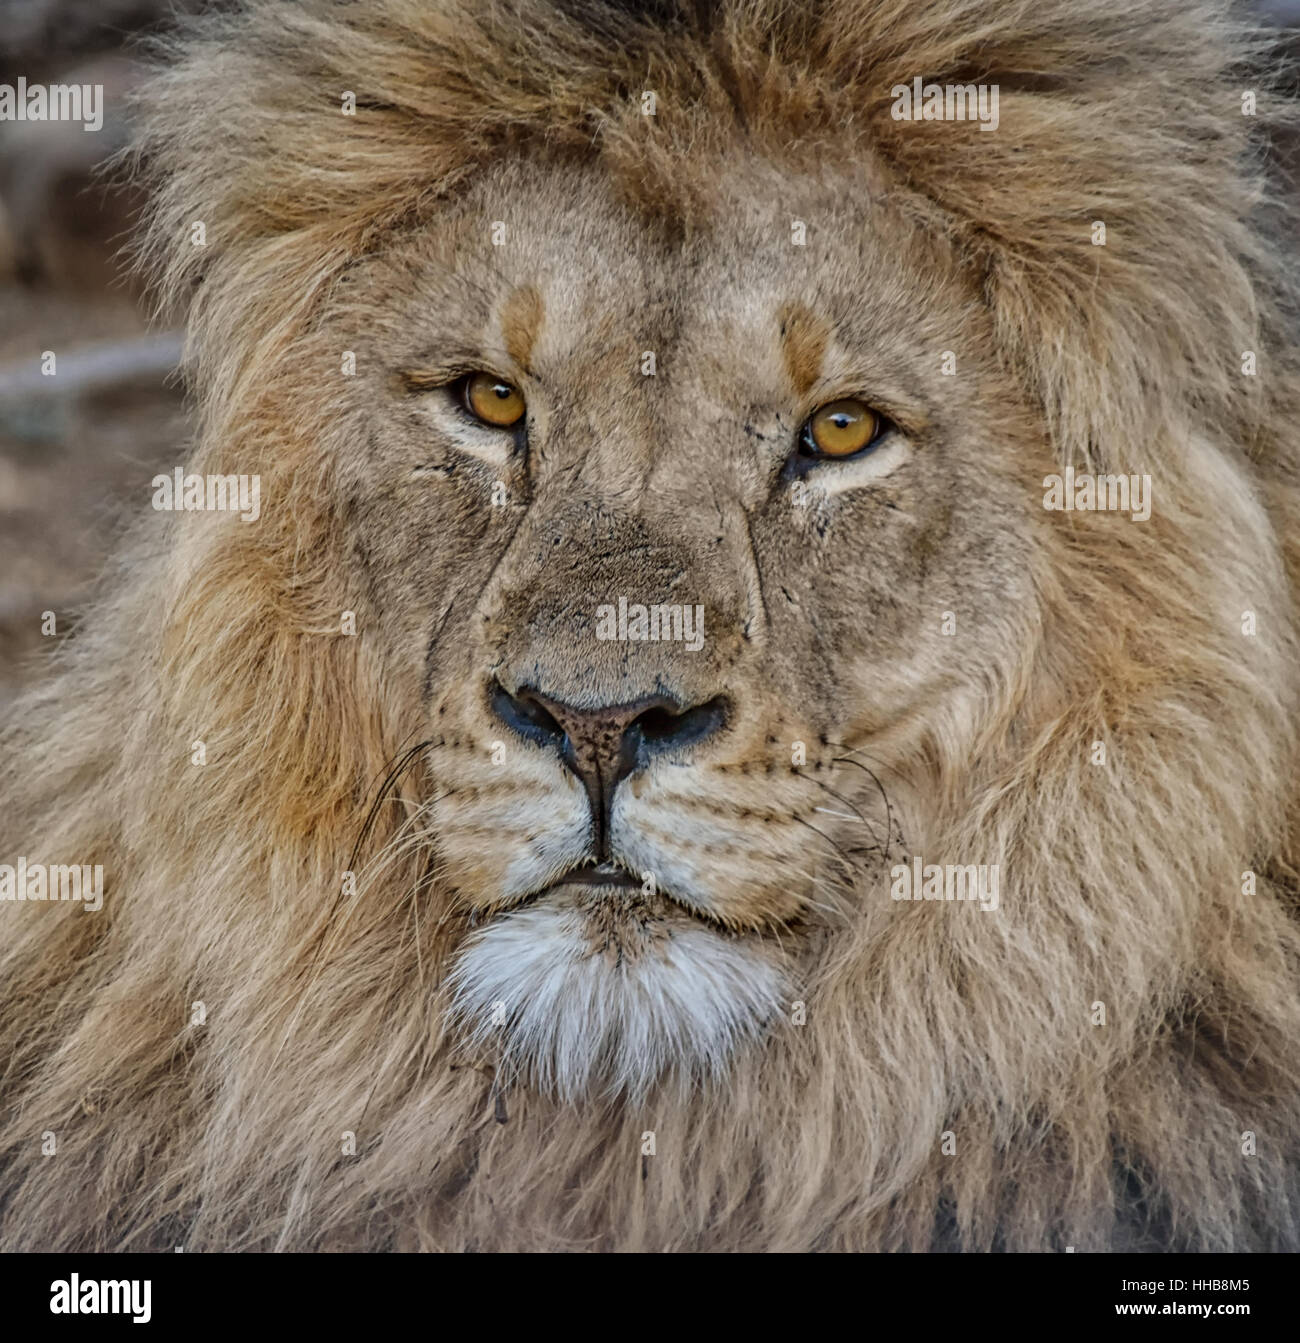 Male Lion in Southern African savanna Stock Photo